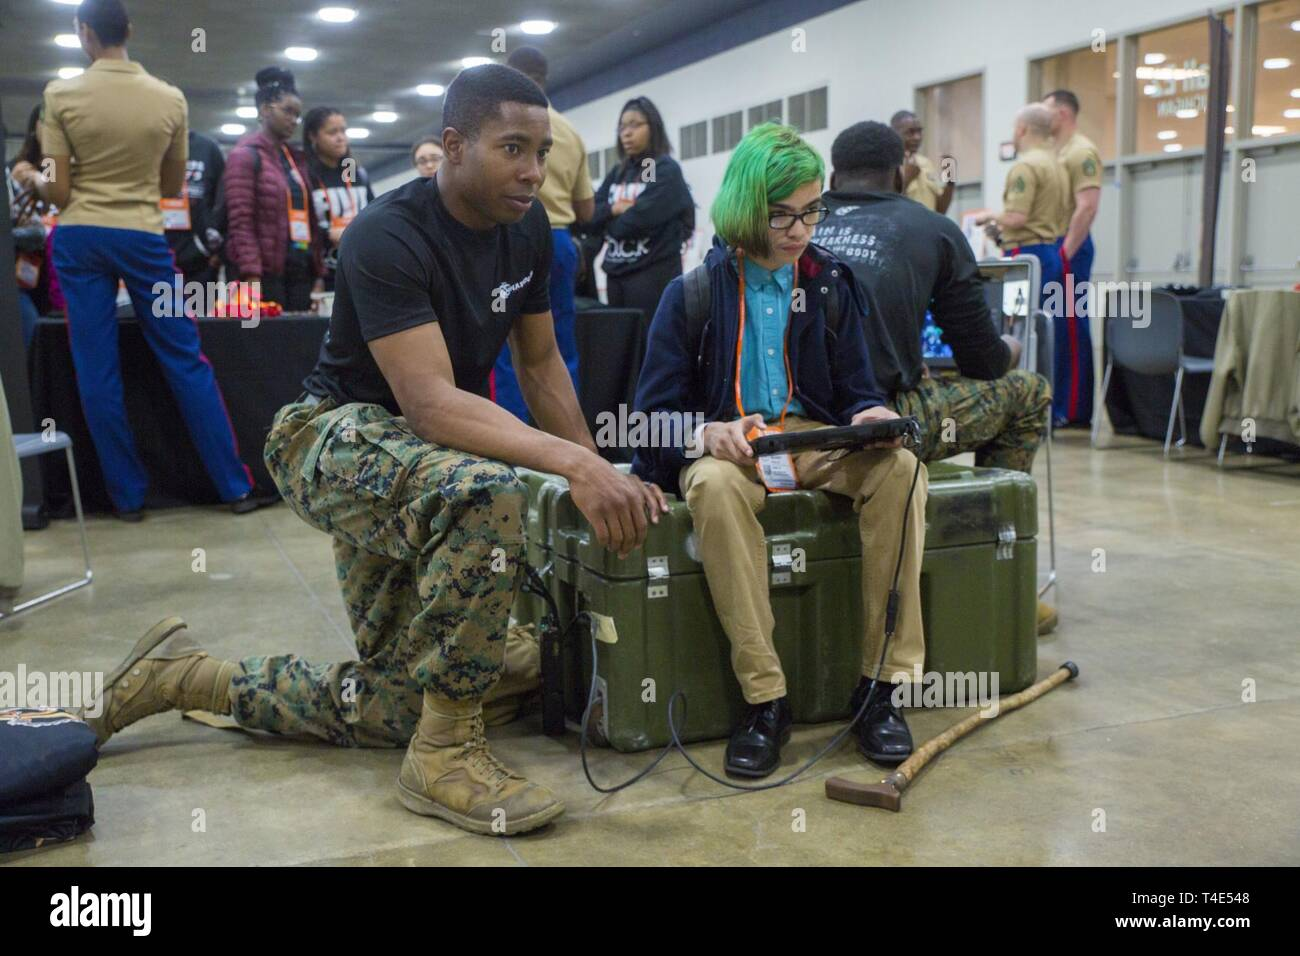 Marine Sgt. Jeremy McBroom, explosive ordnance disposal technician with 2nd EOD Company, 8th Engineer Support Battalion, assists Manny Valle, an eighth grade student at Next Generation Leadership Academy, operate an EOD robot during a National Society of Black Engineers conference STEAMFest in Detroit, March 30, 2019. NSBE is holding its 45th annual national convention consisting of various programs and workshops that are designed to benefit grade school, collegiate, technical, professional and international attendees and the U.S. Marine Corps is a partner organization. Marines partner with or Stock Photo